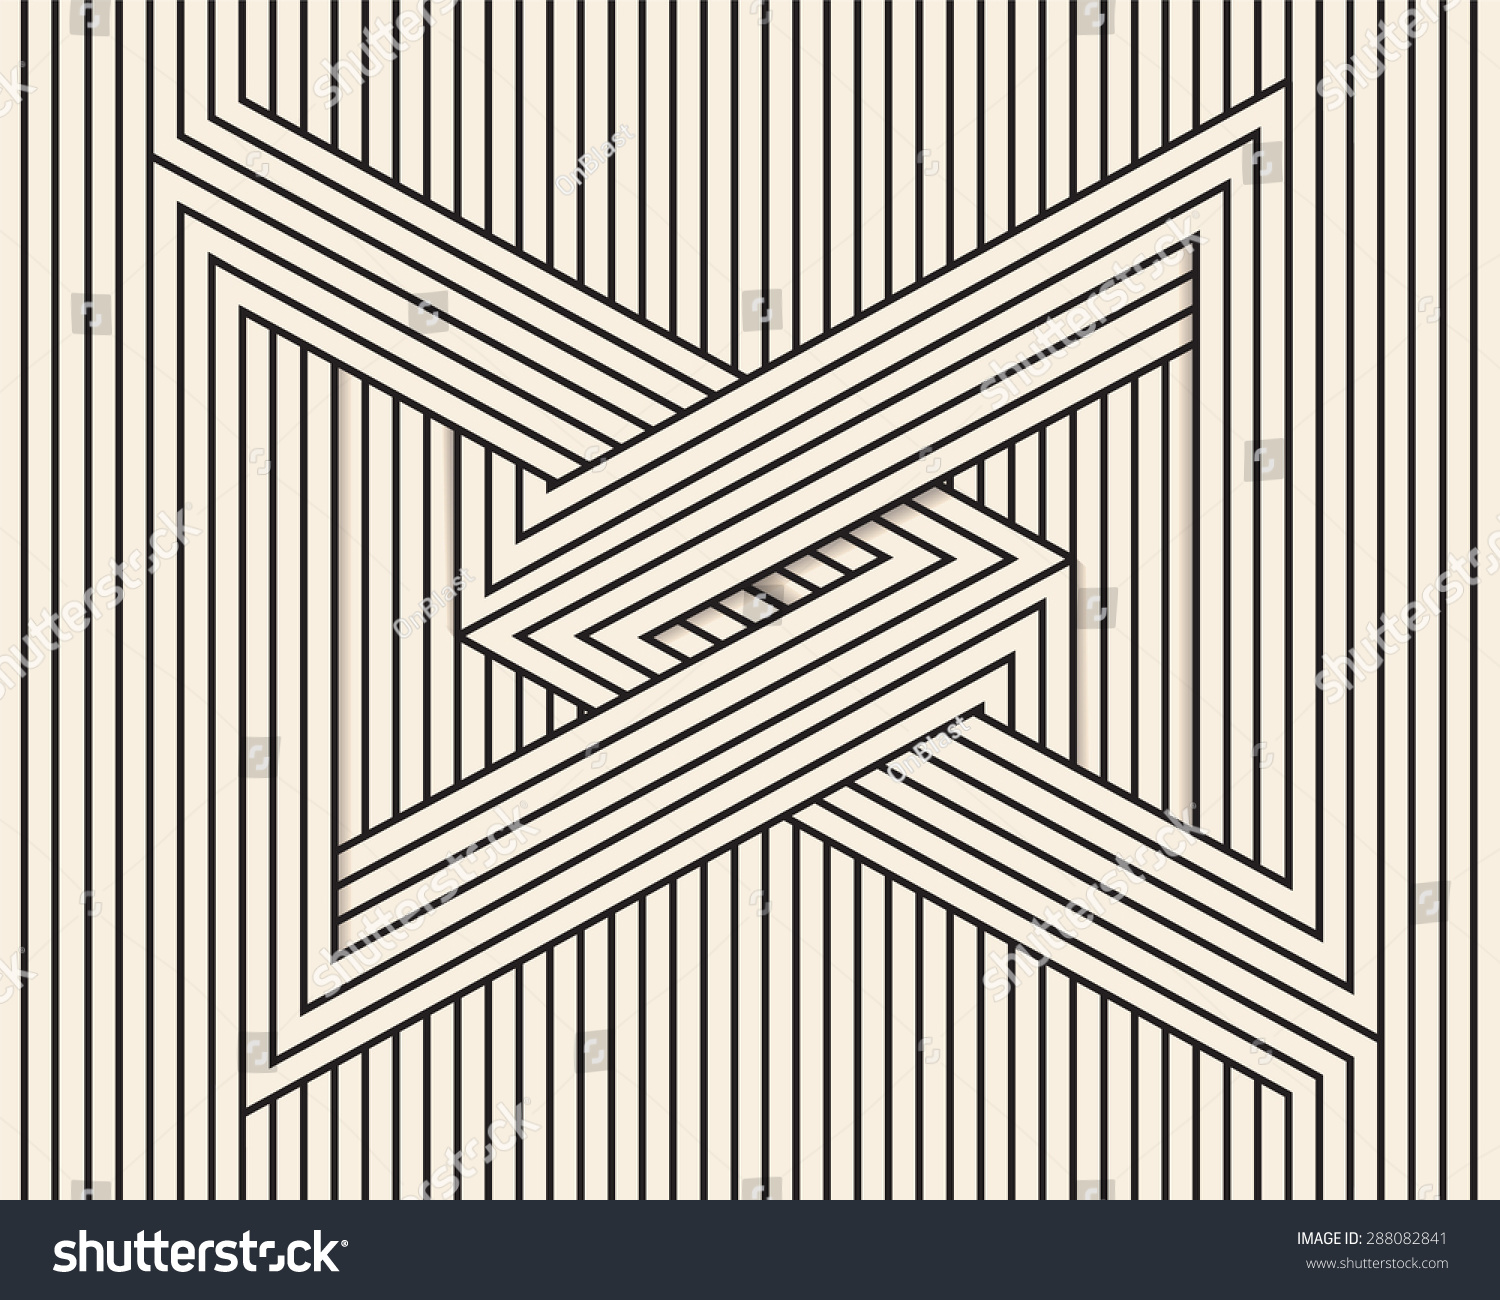 Line Art Illusion : Abstract background made in vector optical illusion